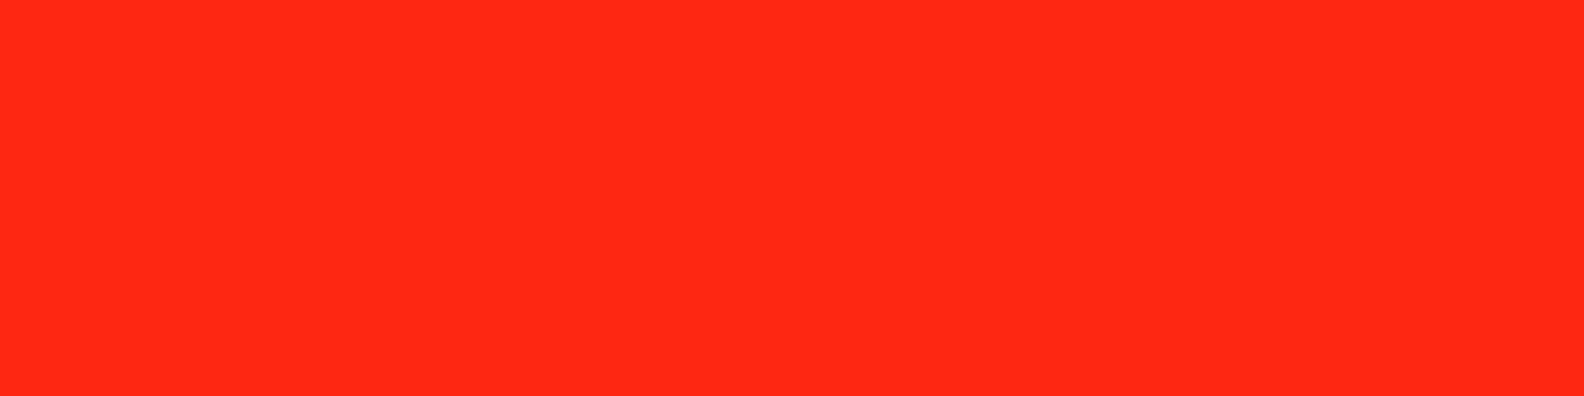 1584x396 Red RYB Solid Color Background